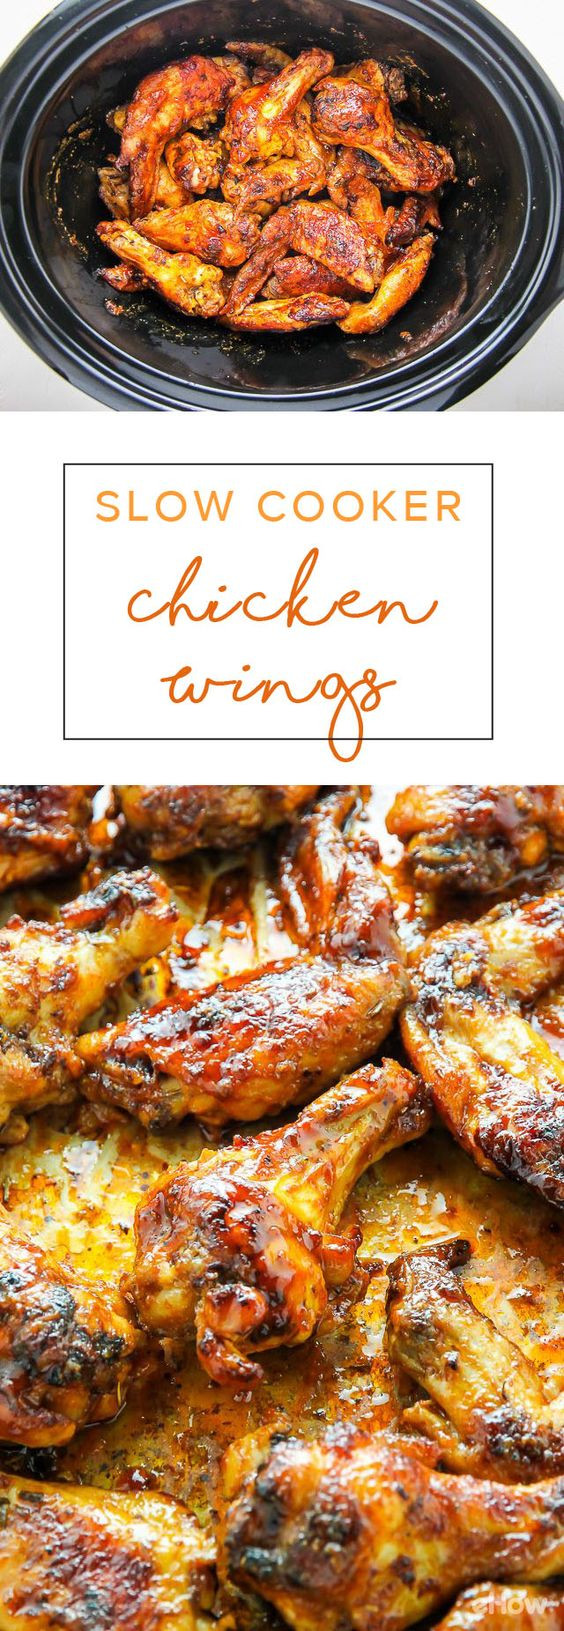 Best Way To Cook Chicken Wings  Smart Slow Cooker Recipes